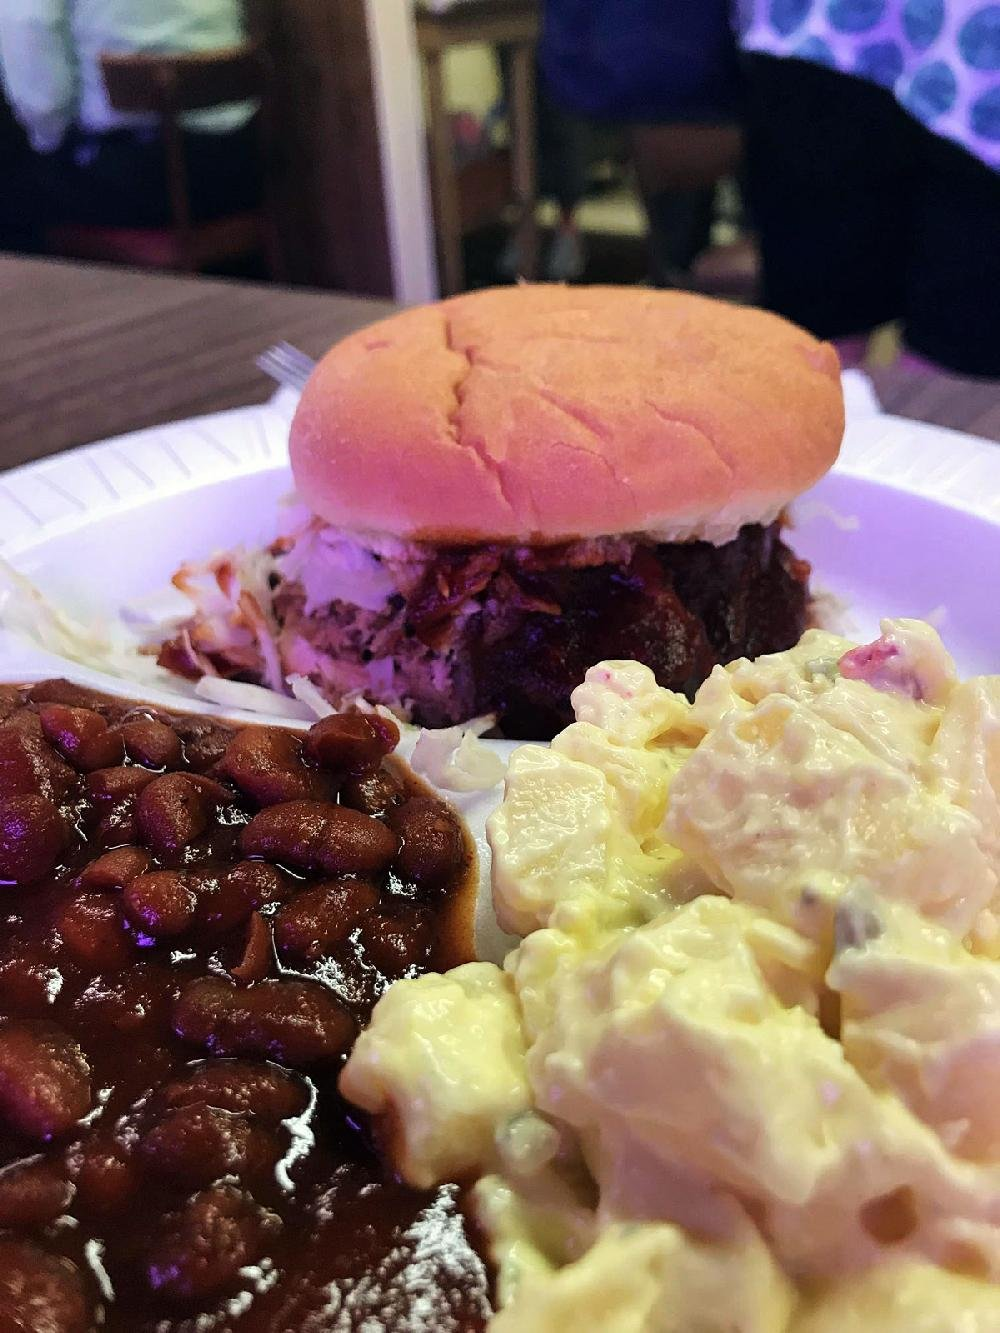 The Pulled Pork Sandwich Plate has beans and potato salad on the side.